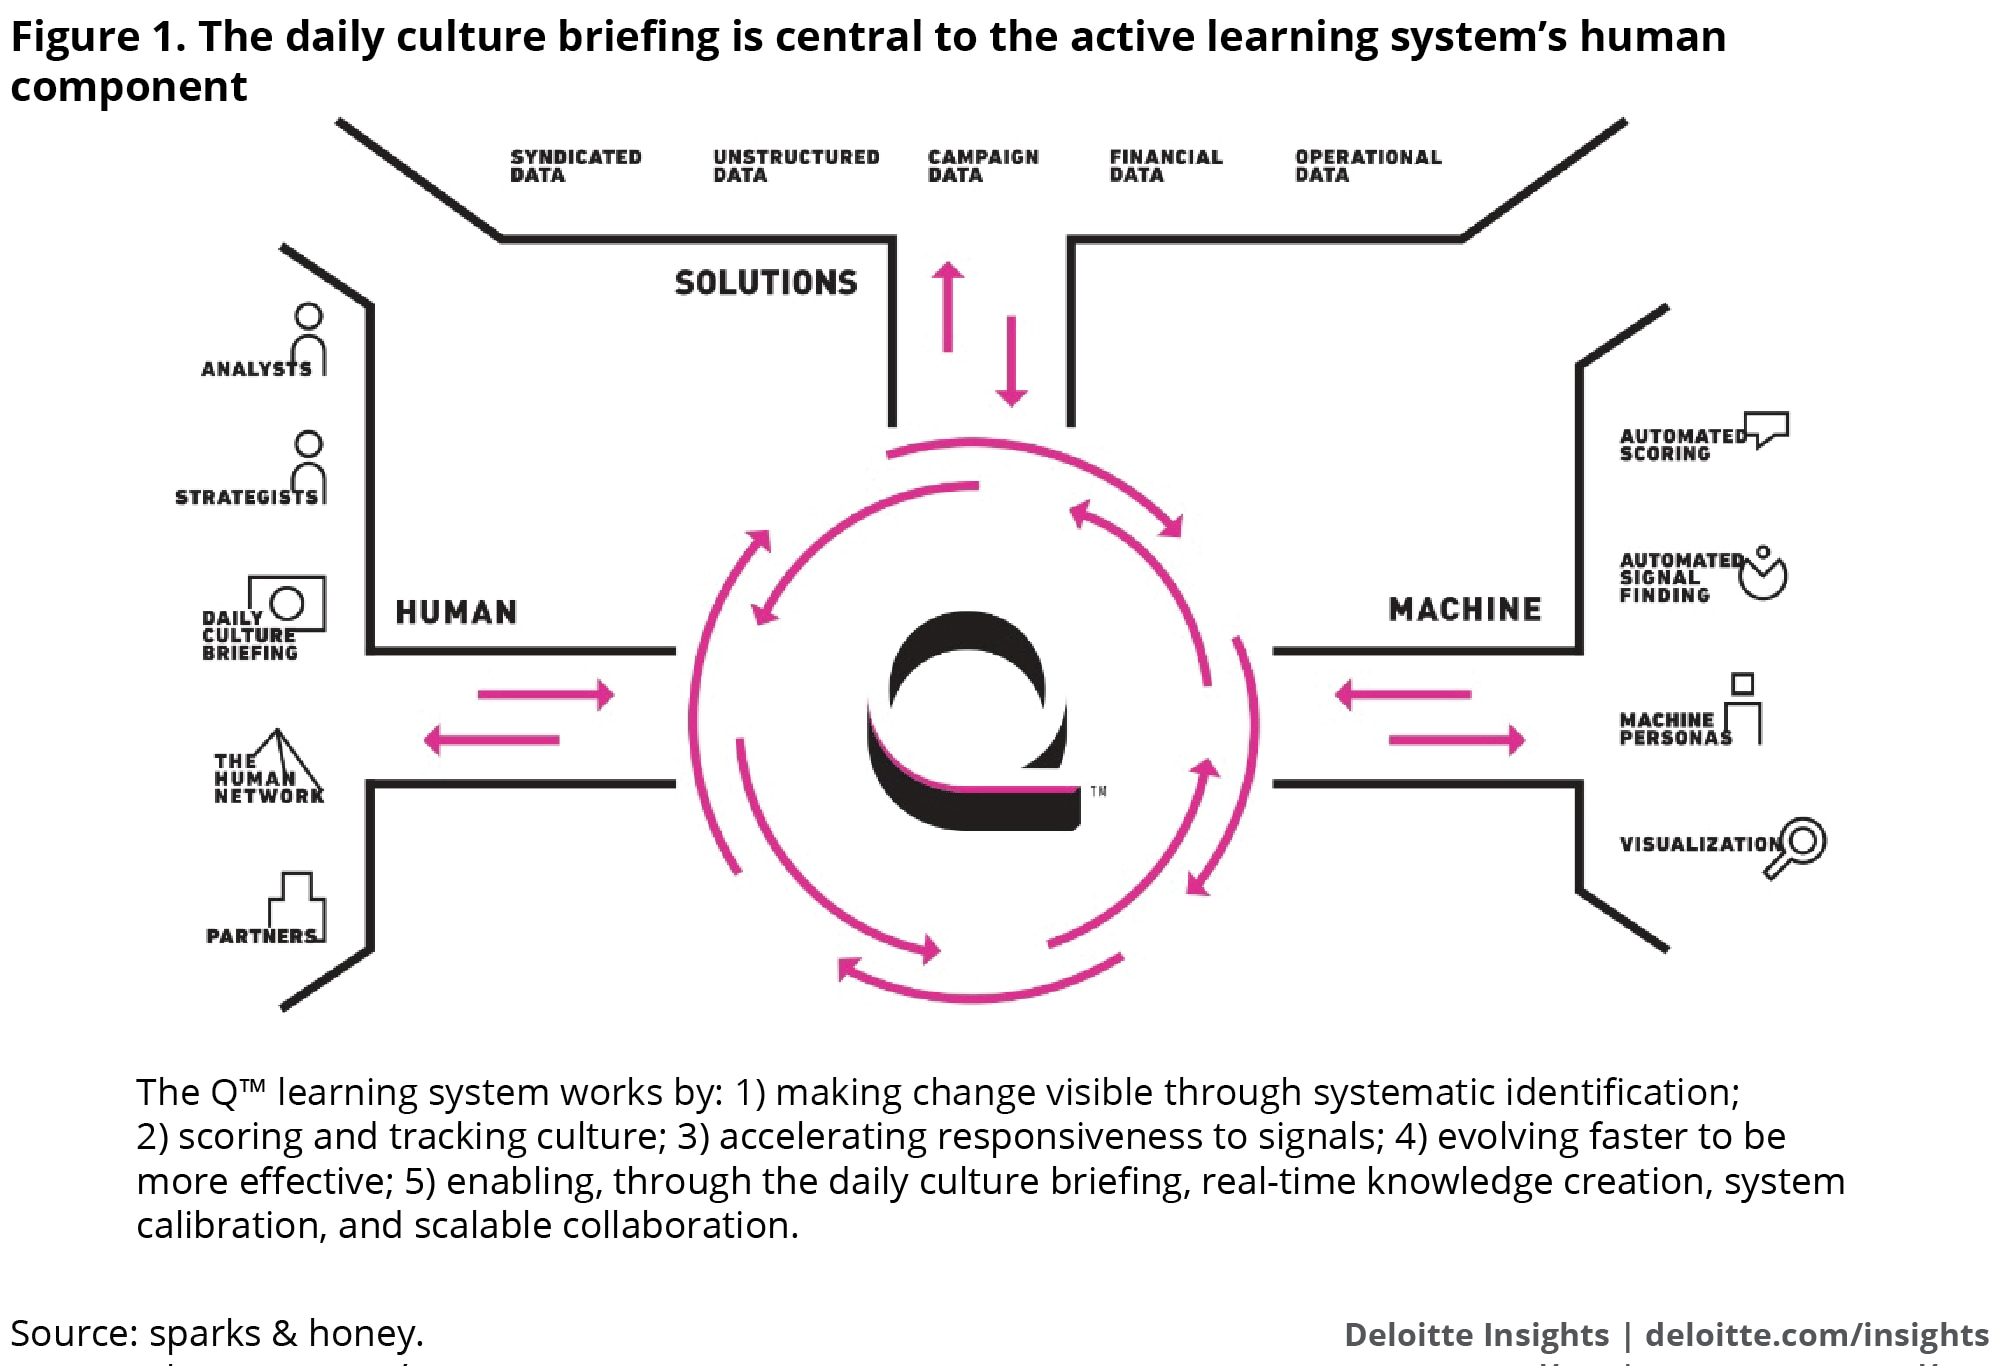 The daily culture briefing is central to the active learning system's human component